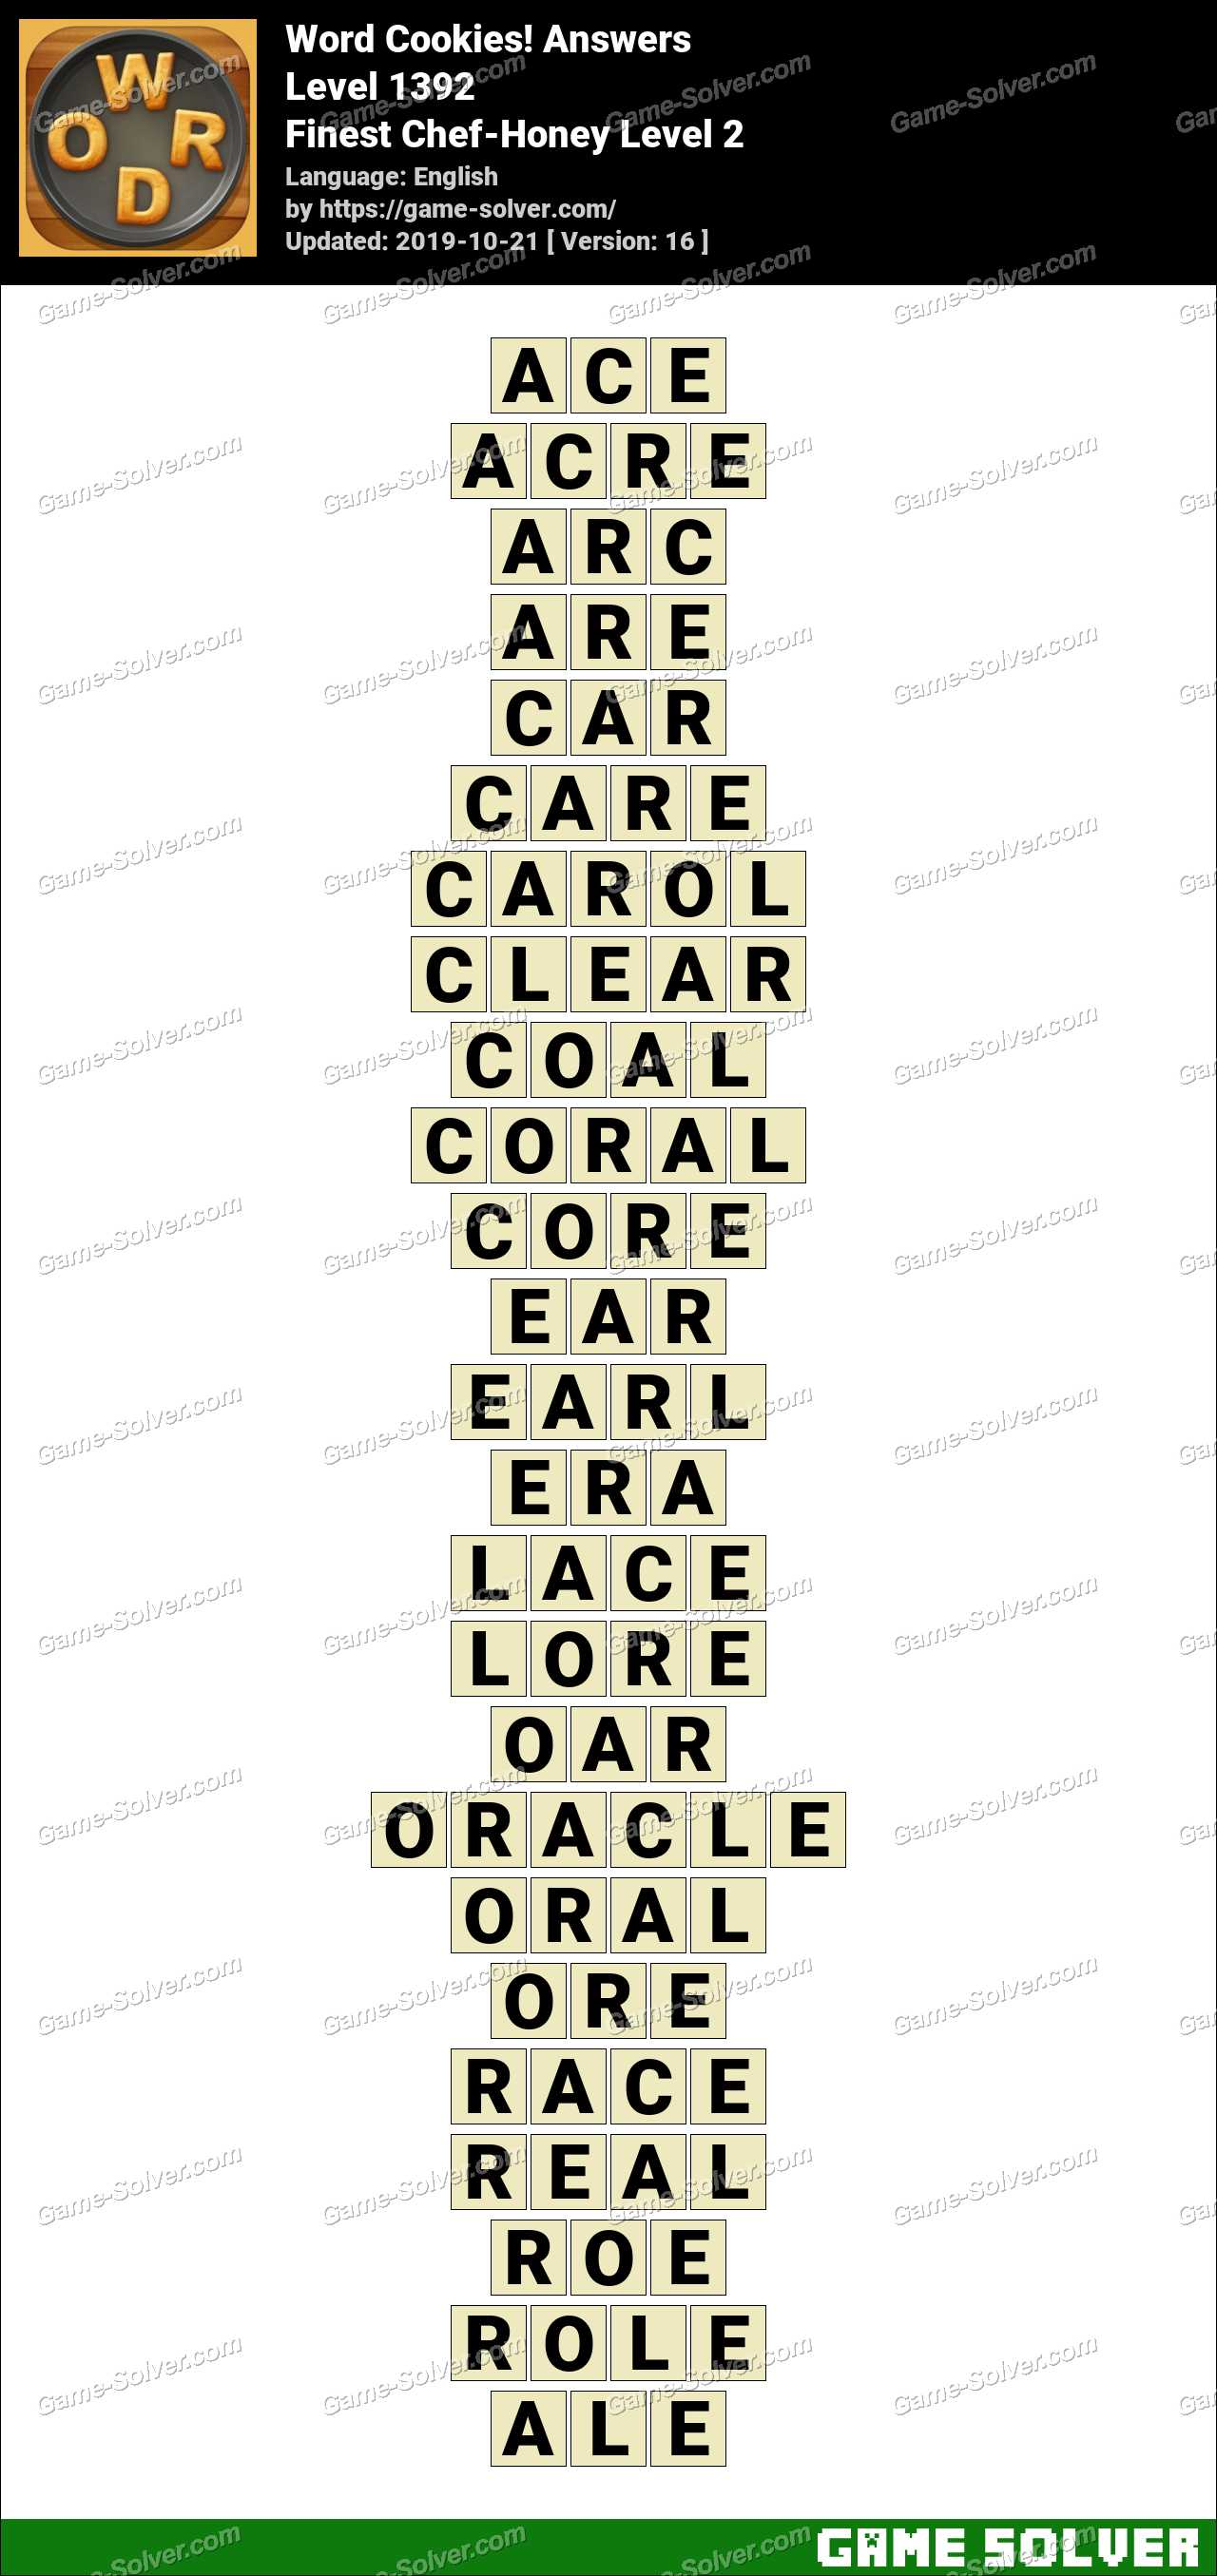 Word Cookies Finest Chef-Honey Level 2 Answers